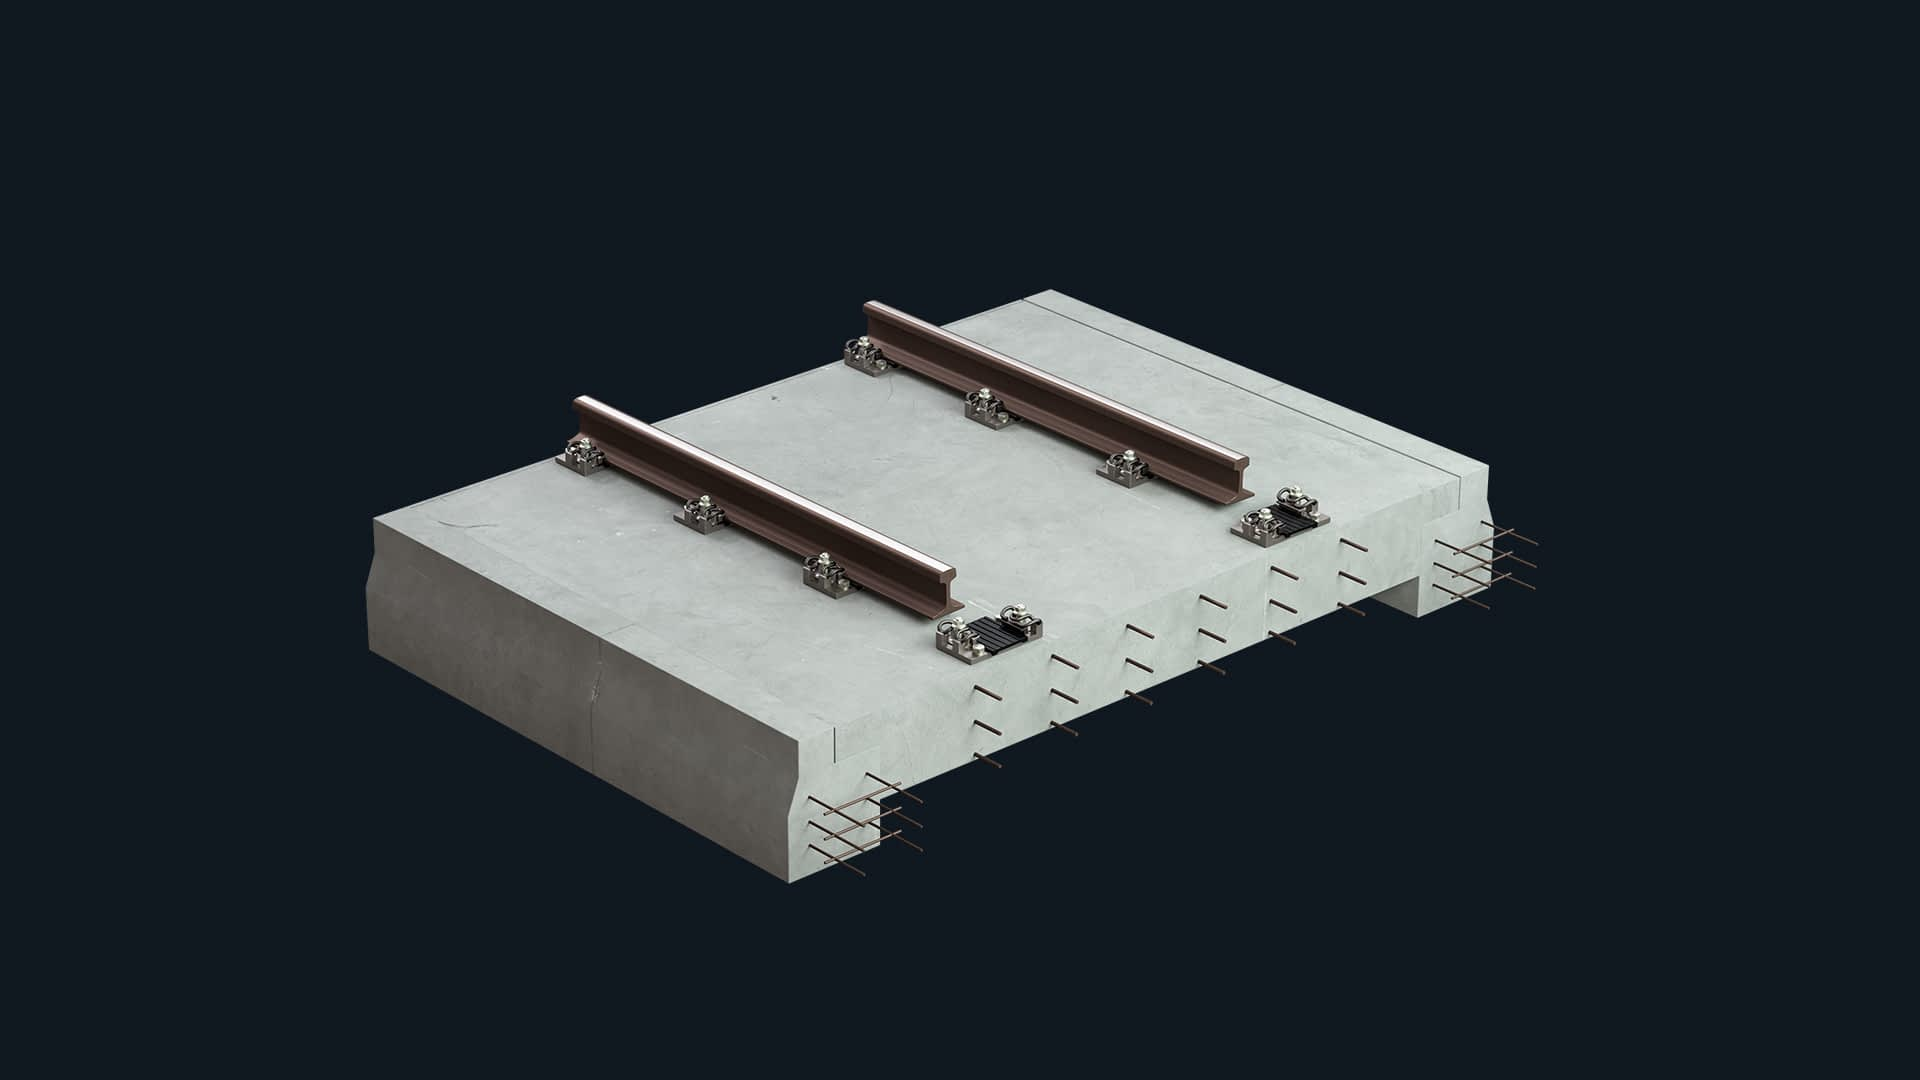 tiantie-group_products_rail-pads_slider02_1920x1080